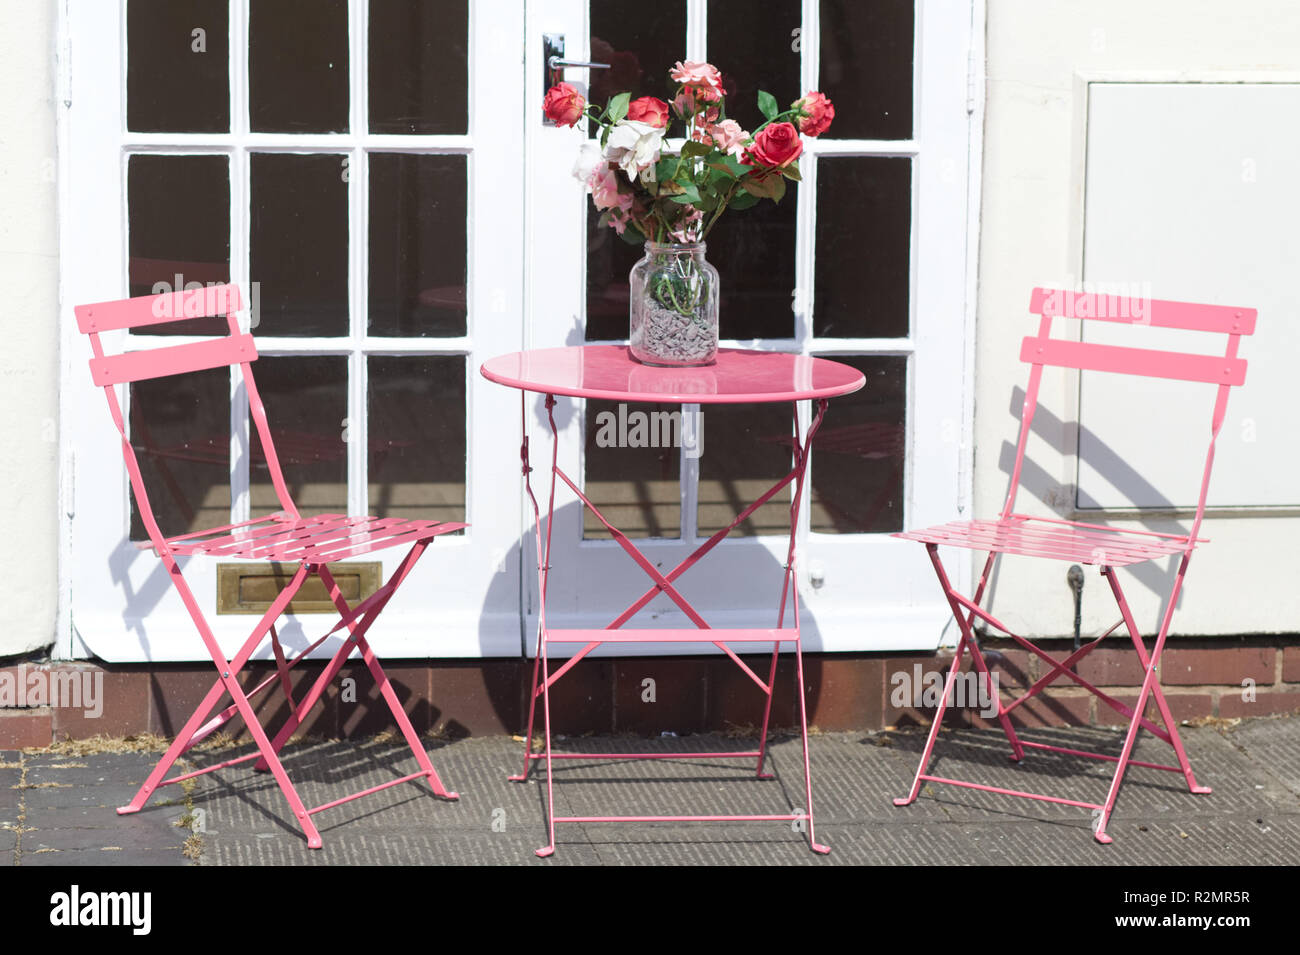 Outside Table And Chairs With A Vase Of Flowers For Decoration Stock Photo Alamy